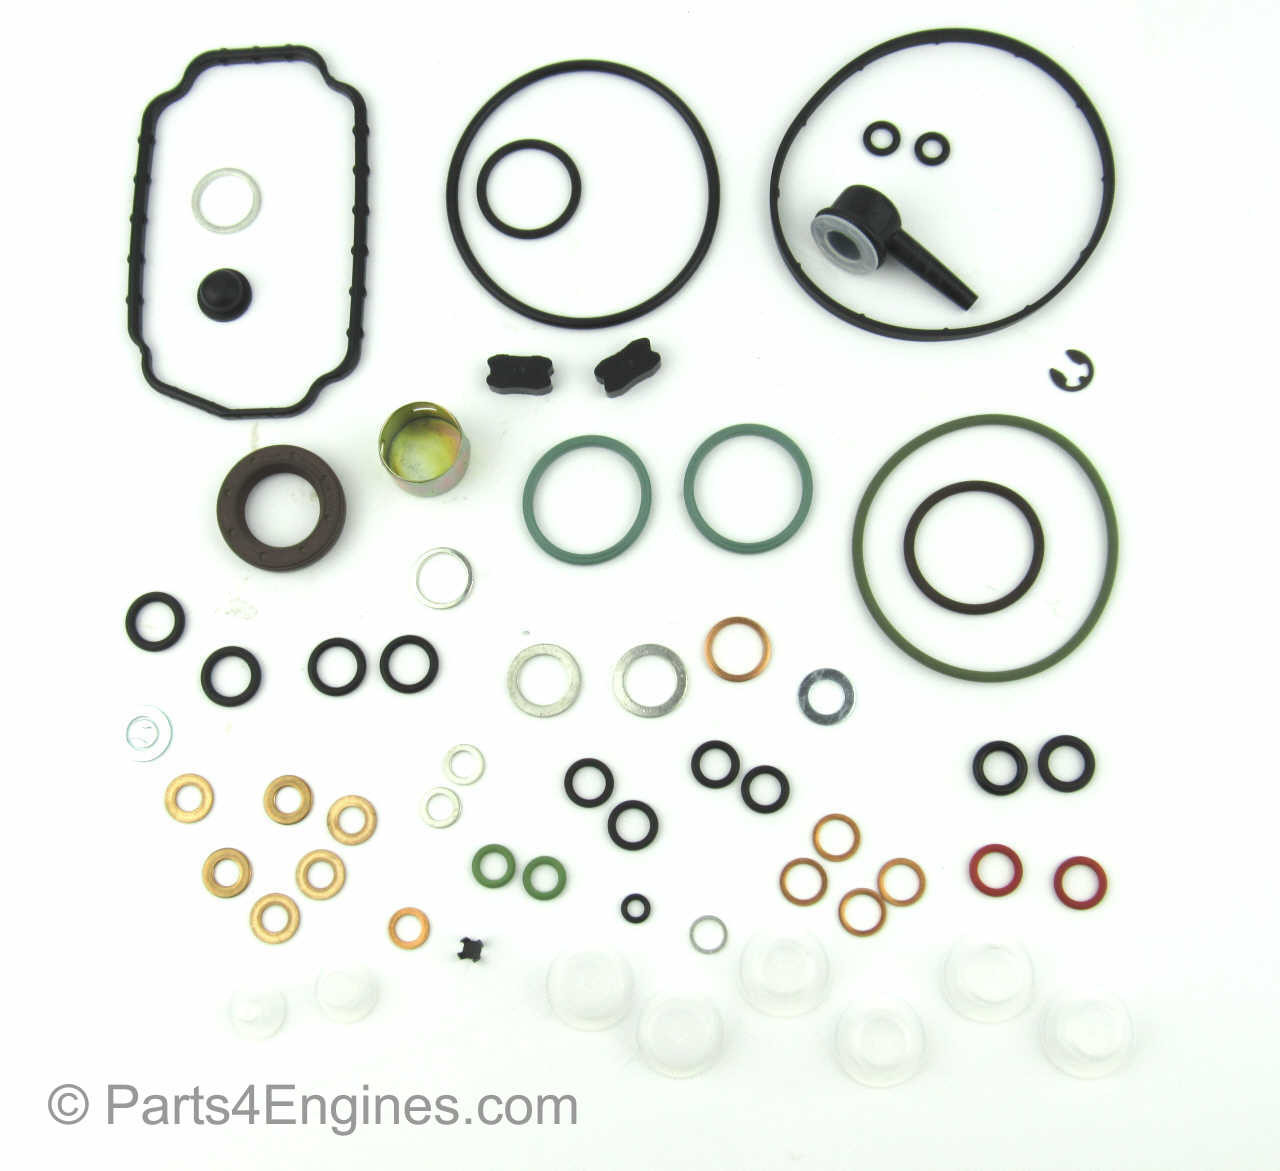 Perkins Prima M50 fuel injection pump seal and gasket replacement kit - parts4engines.com